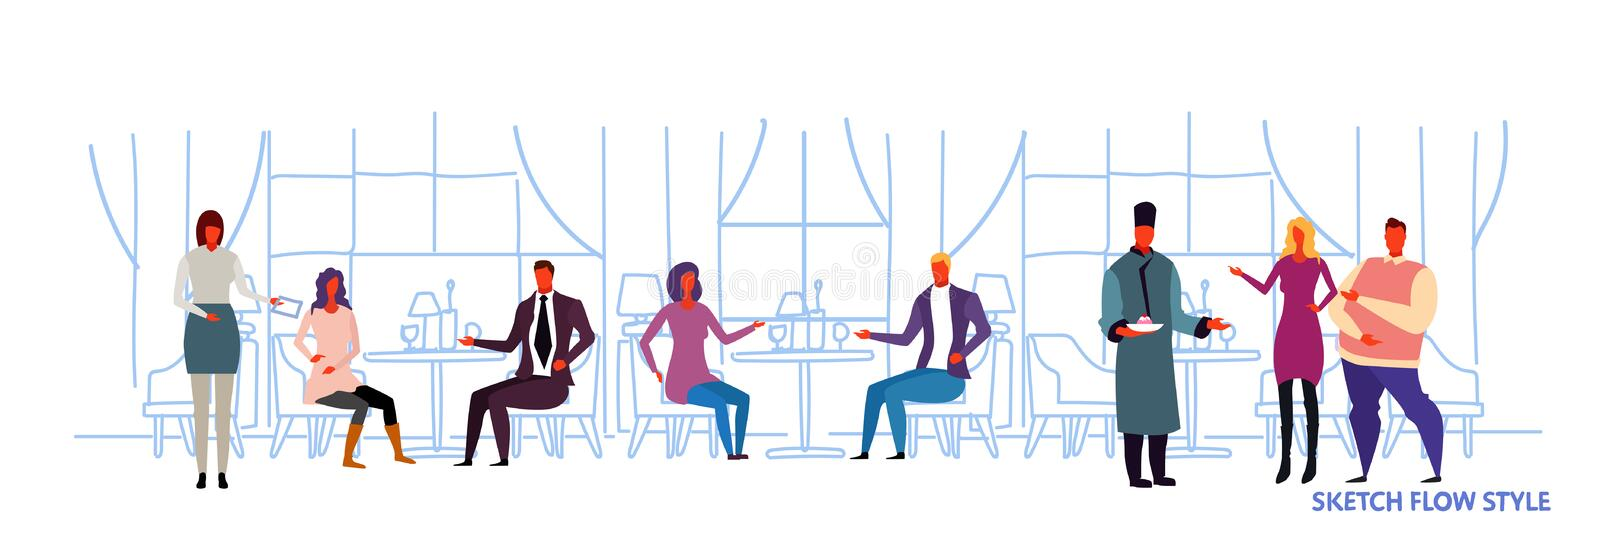 People visitors sitting at restaurant tables waiters showing hospitality and serving guests modern cafe interior design. Sketch flow style horizontal banner royalty free illustration